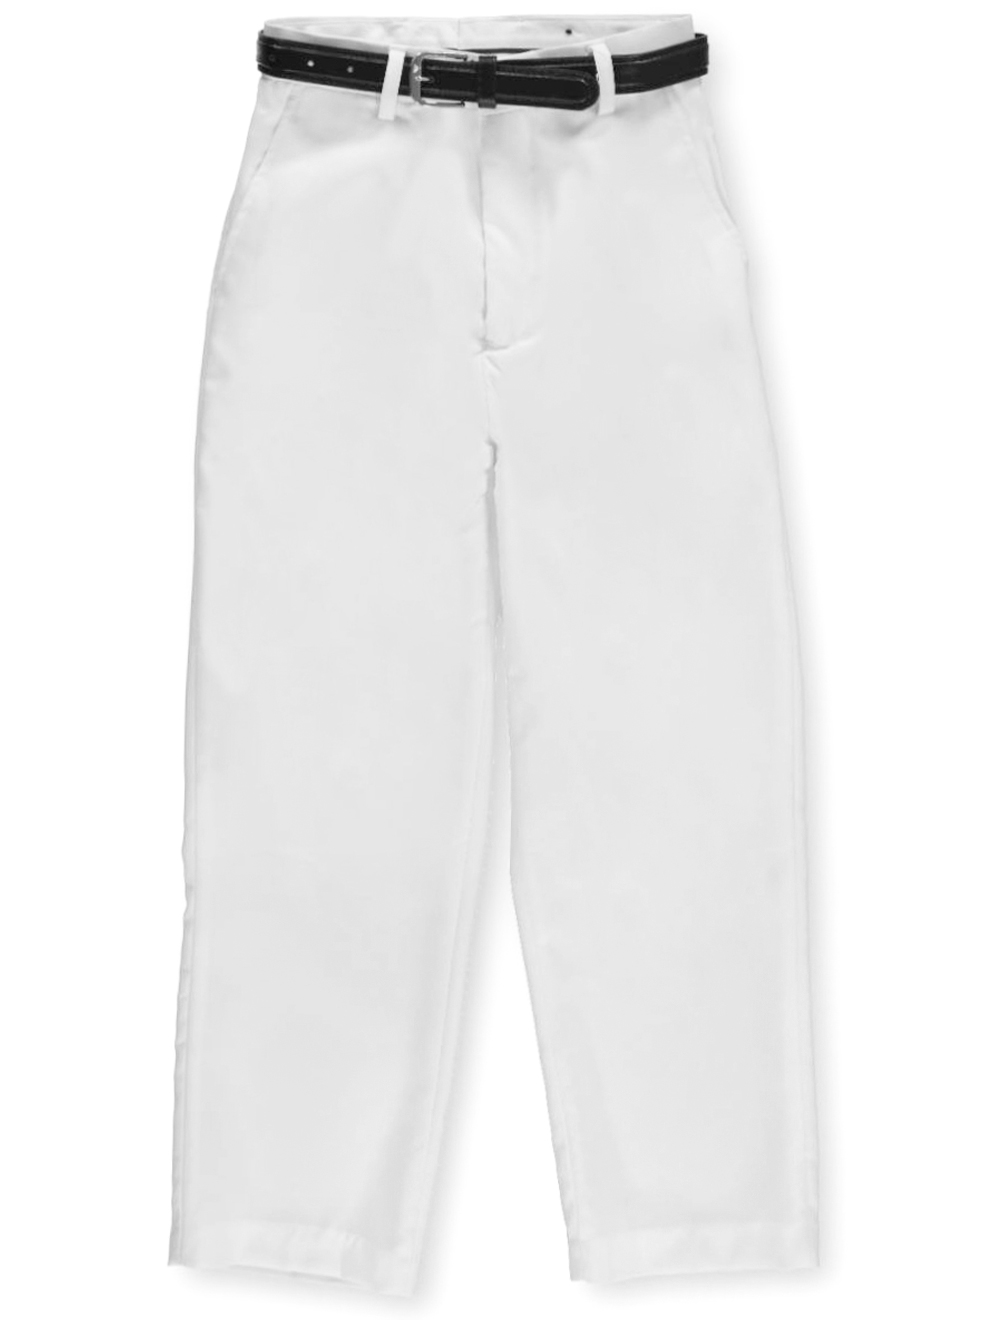 849cfc1e74e04 Vittorino Big Boys' Belted Flat Front Dress Pants (Sizes 8 – 20)